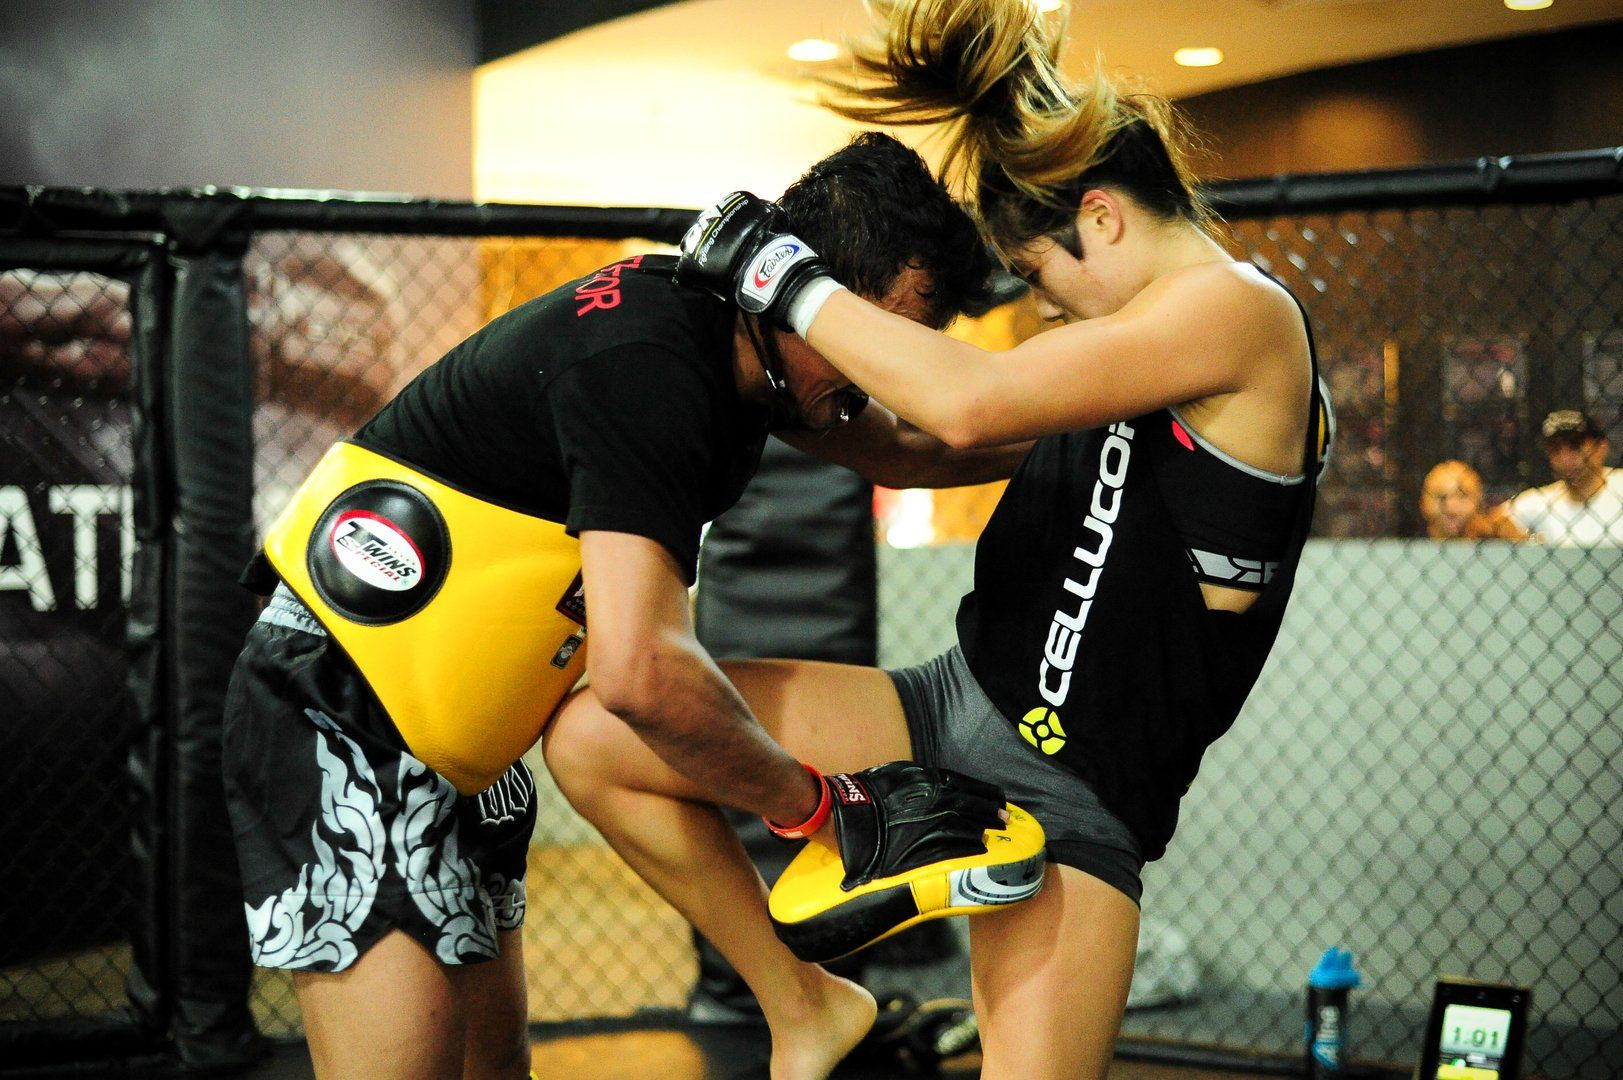 ONE Superstar Angela Lee trains hard at the Evolve Fighters Program.